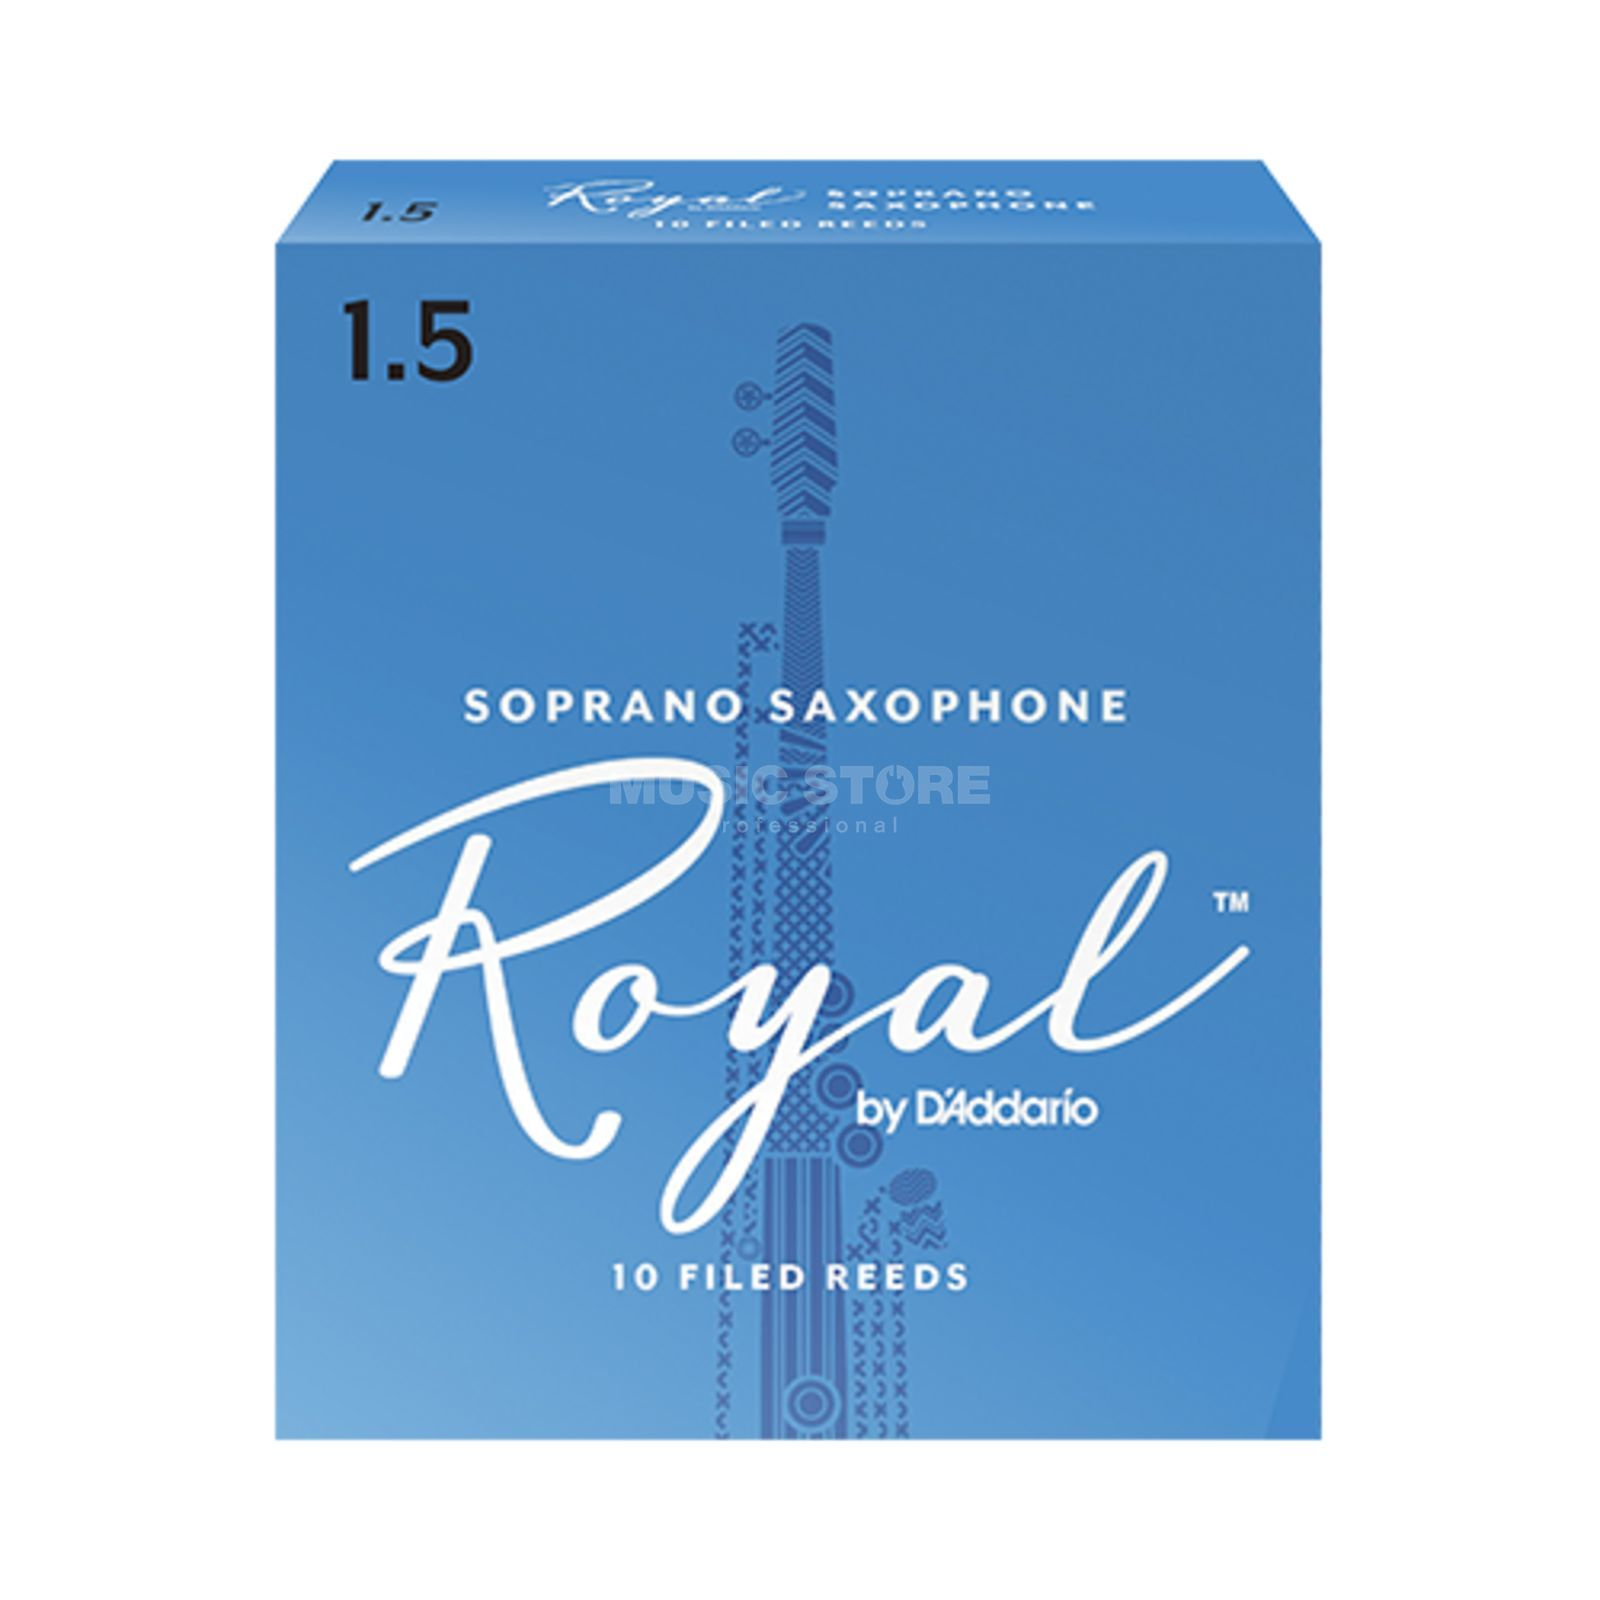 D'Addario Woodwinds Soprano Saxophone Reeds 1.5 Box of 10 Изображение товара